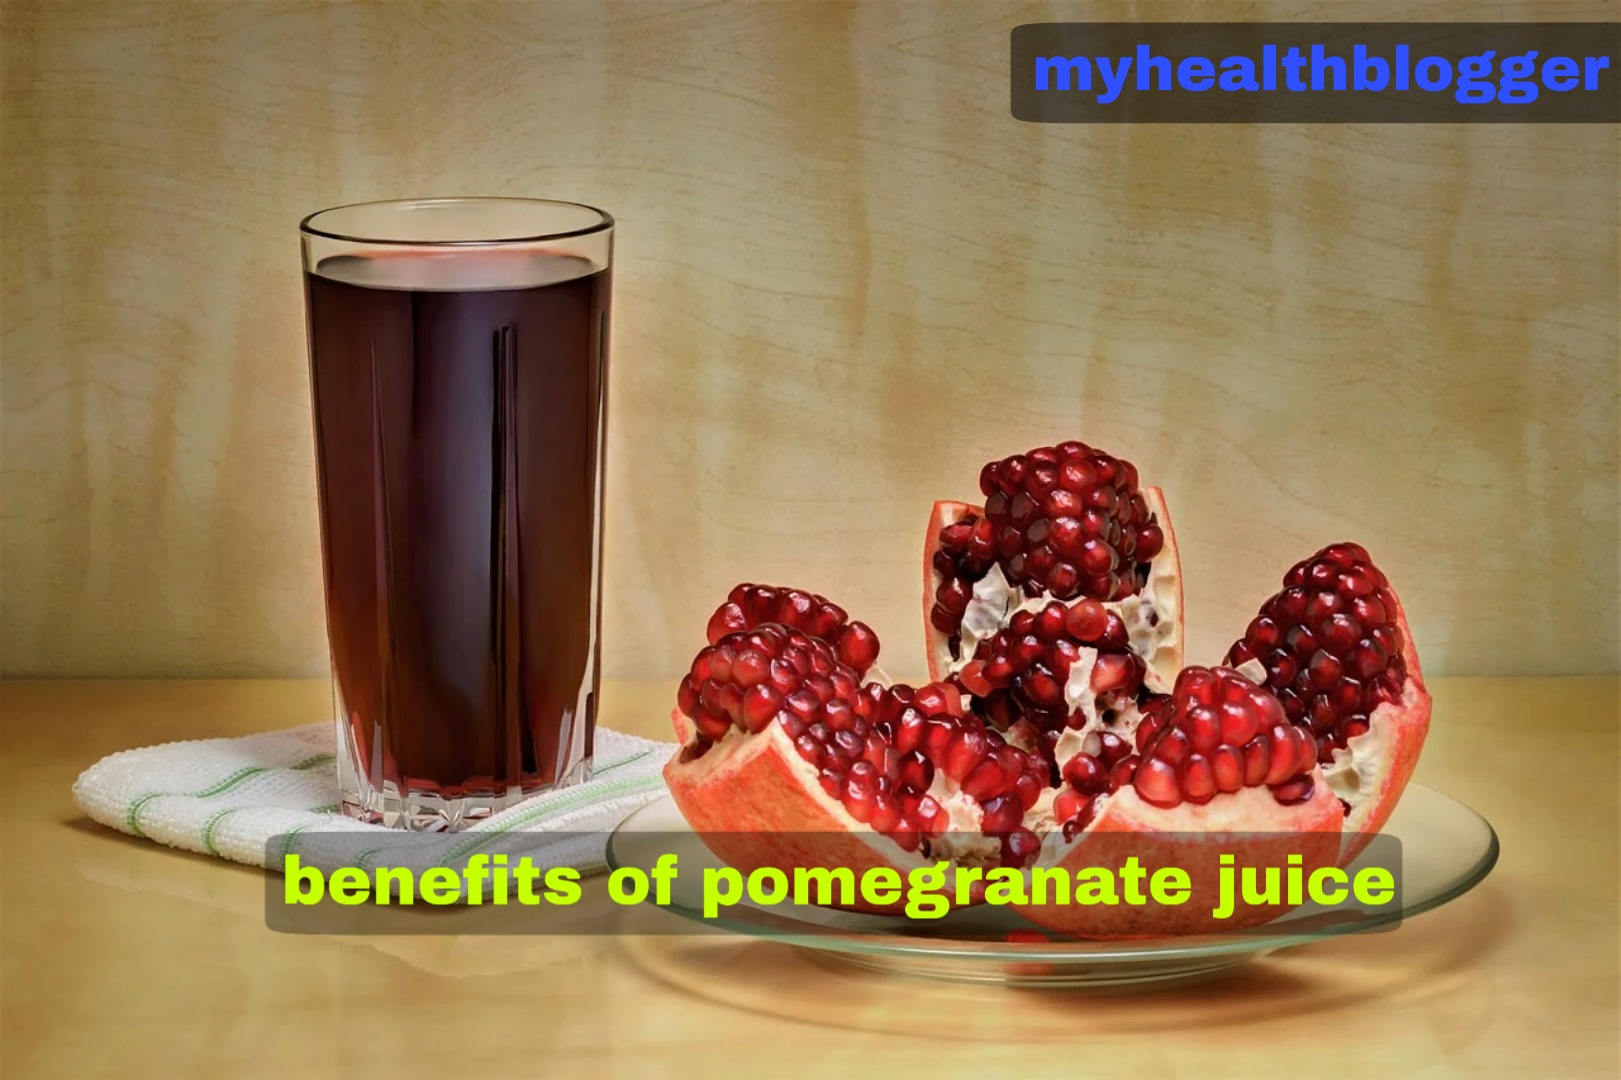 benefits of pomegranate and its juice